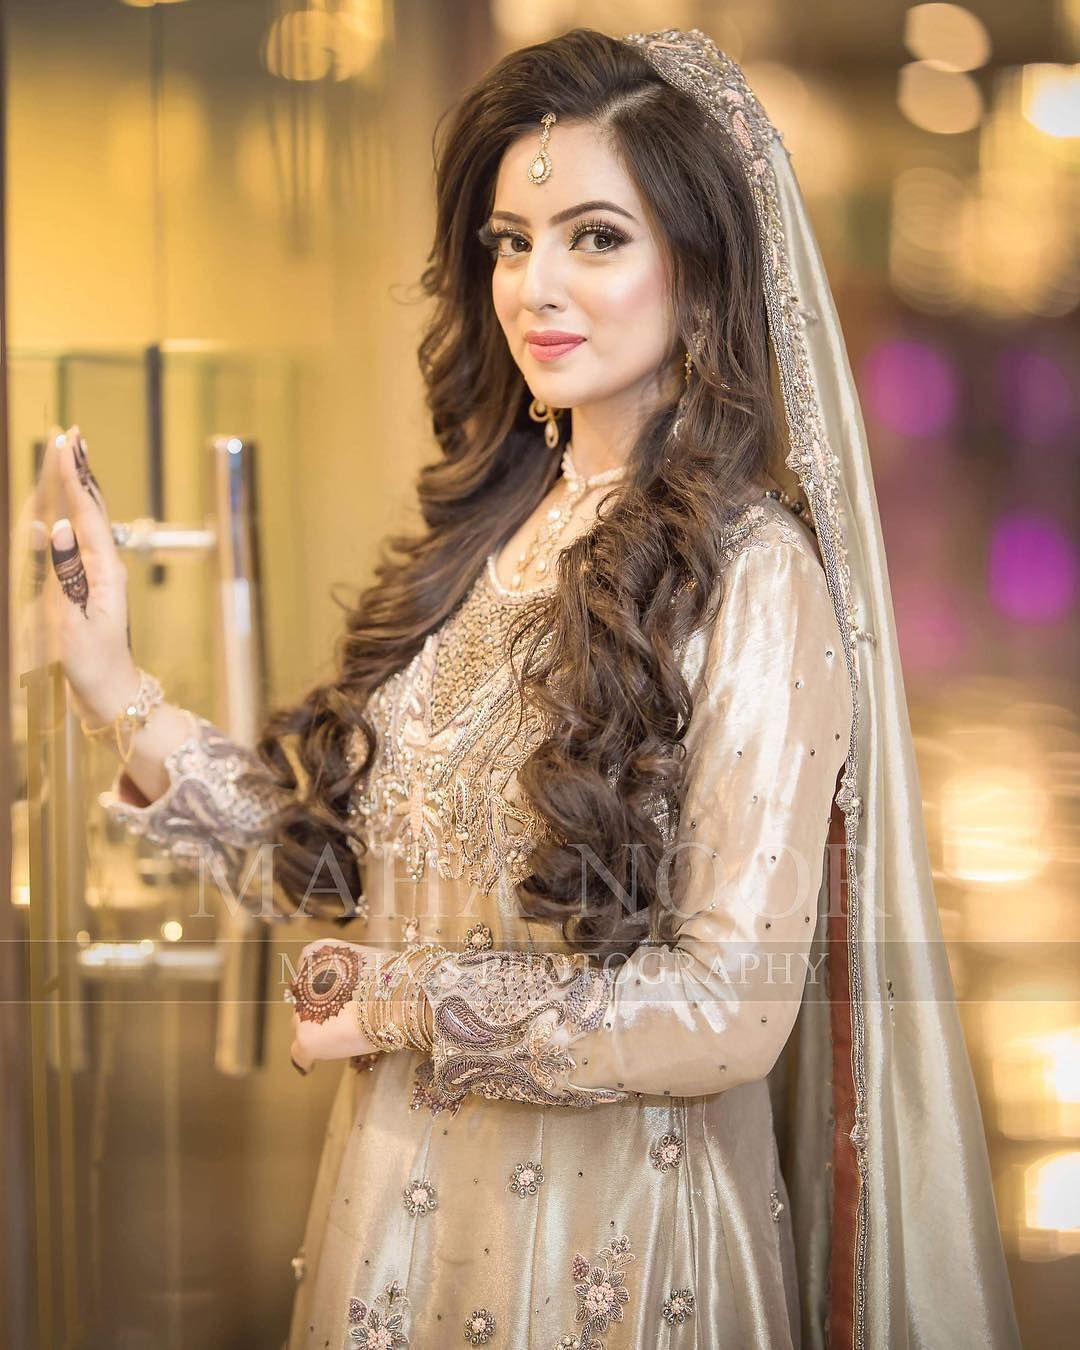 Brides Dulhan From Pakistan And India Mostly On Their Valima Nikah Or Celeberate This Ceremon Bridal Dresses Pakistan Pakistani Bridal Hairstyles Nikah Dress